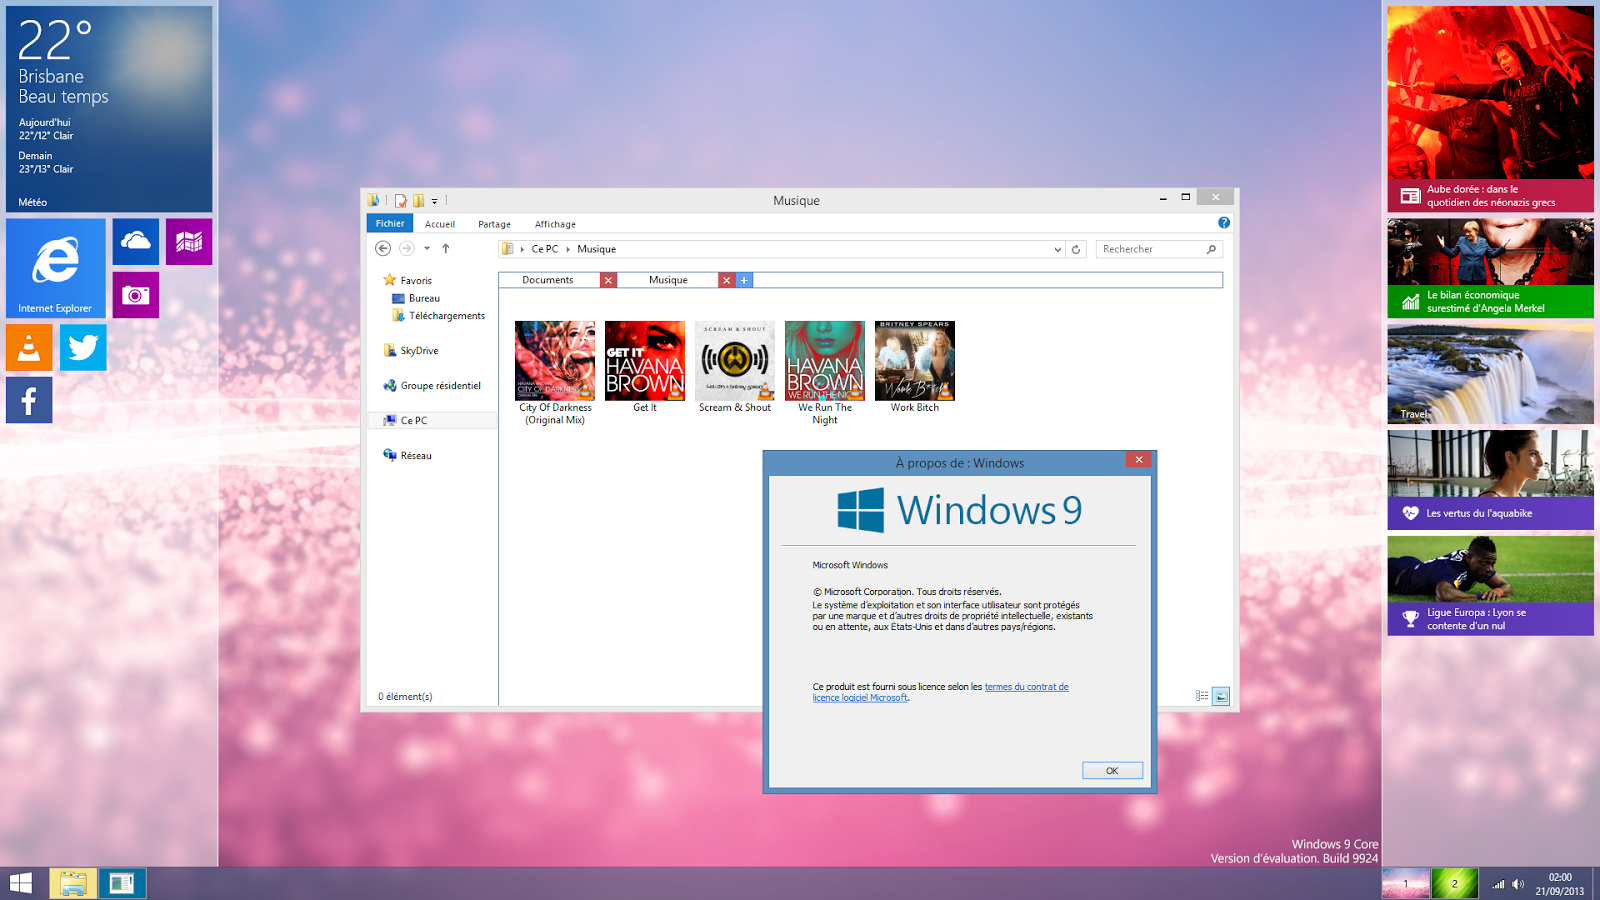 Responsive operating system (windows 9)